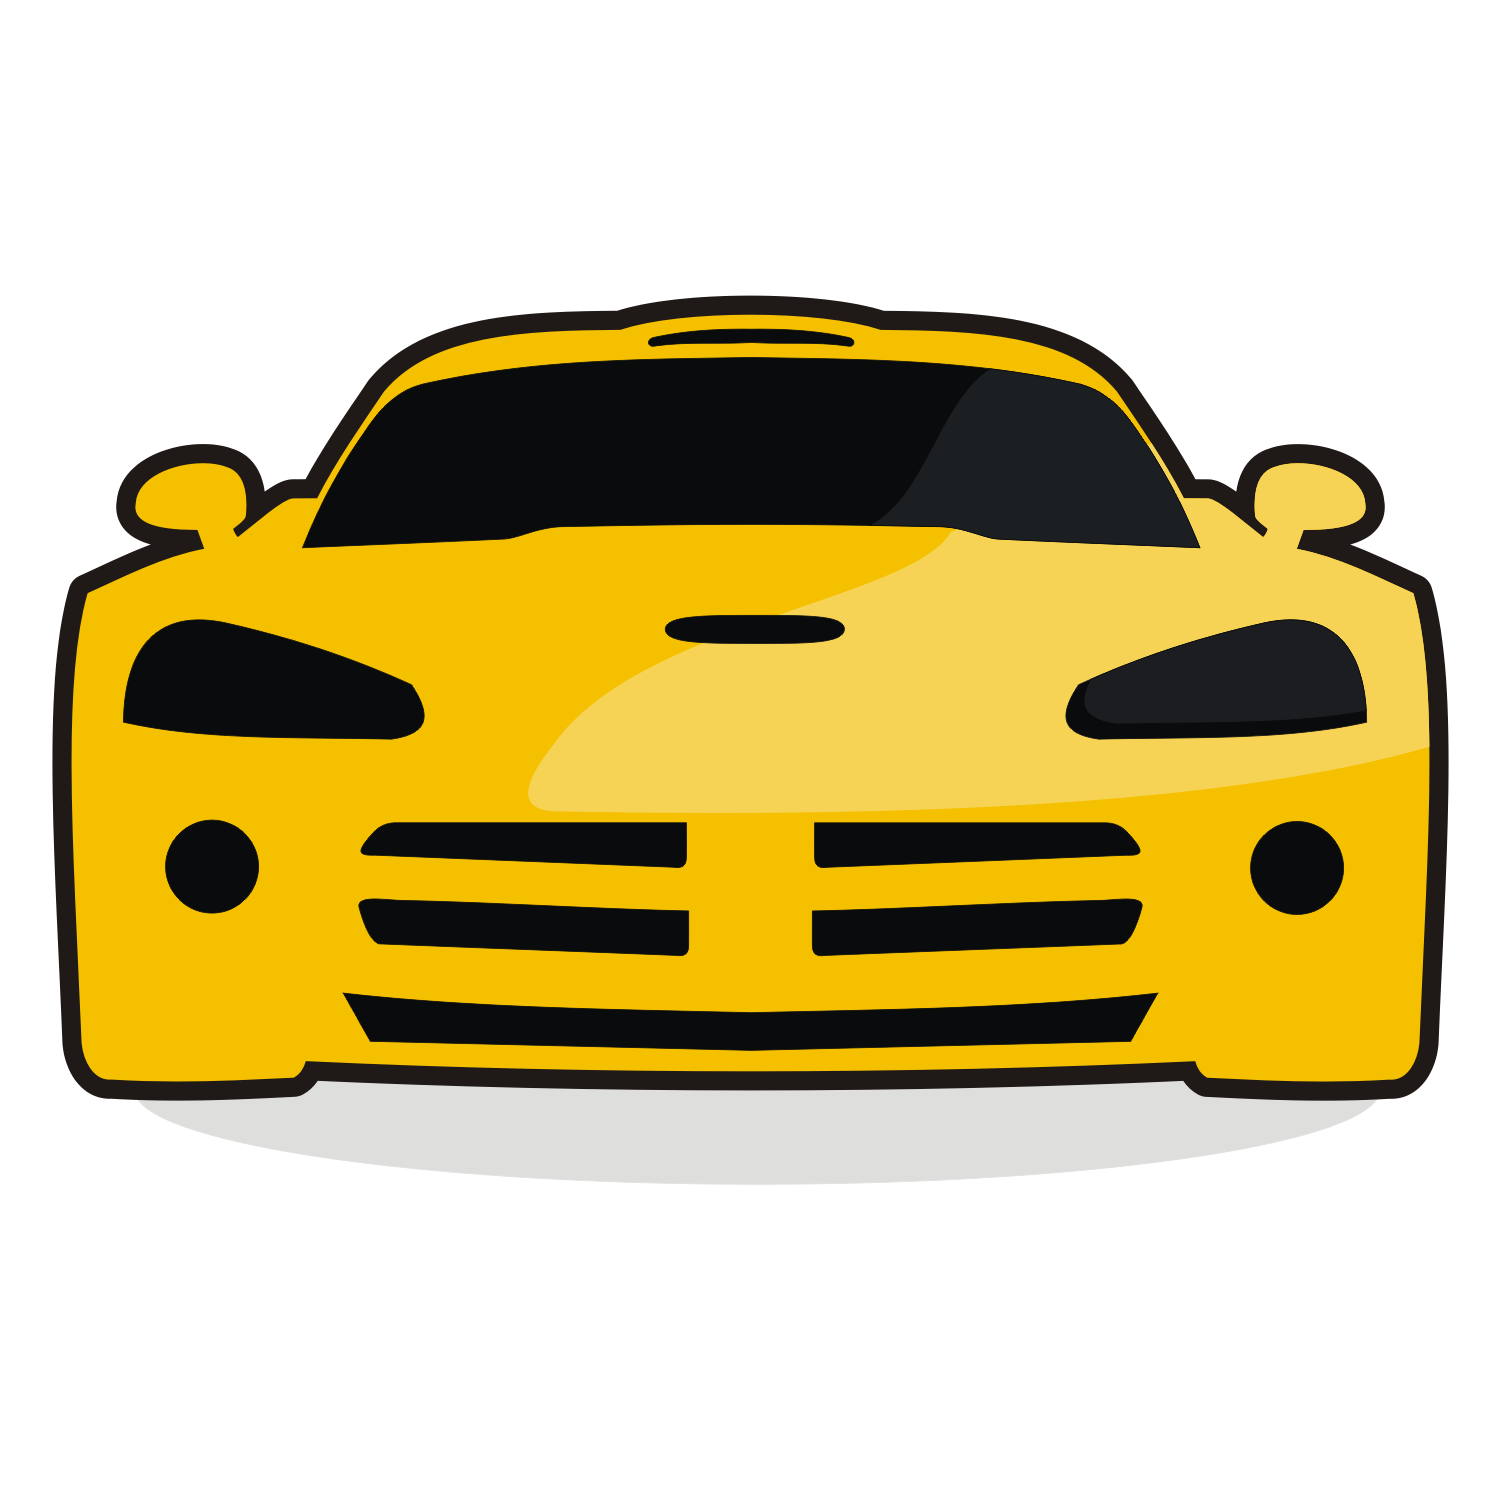 Yellow race car. Clipart free download best